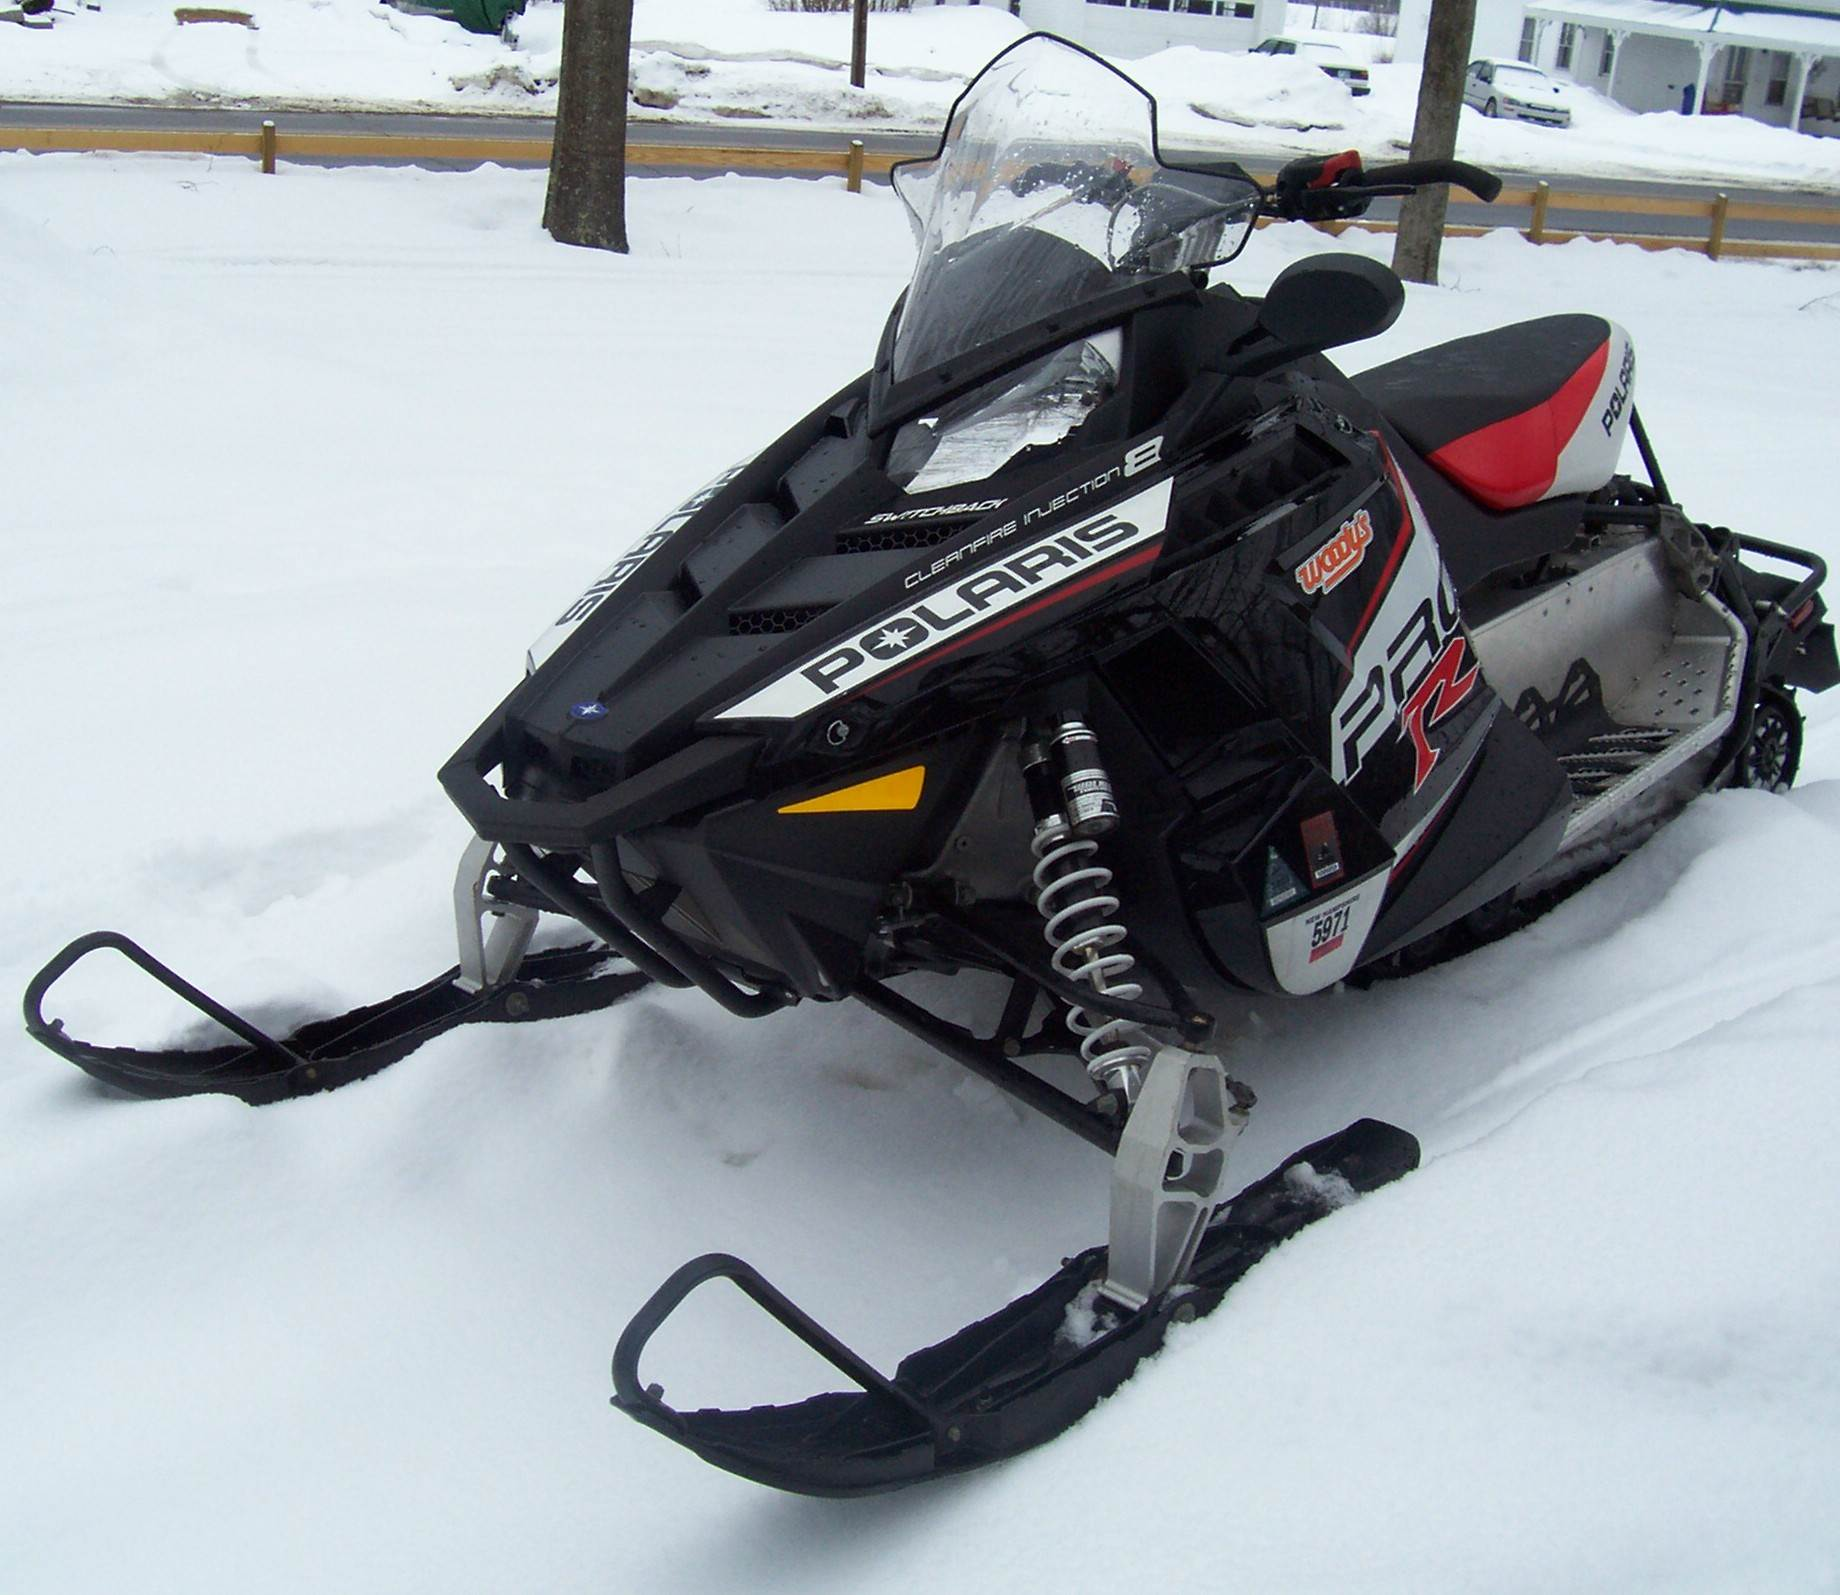 2013 Polaris Pro R in Center Conway, New Hampshire